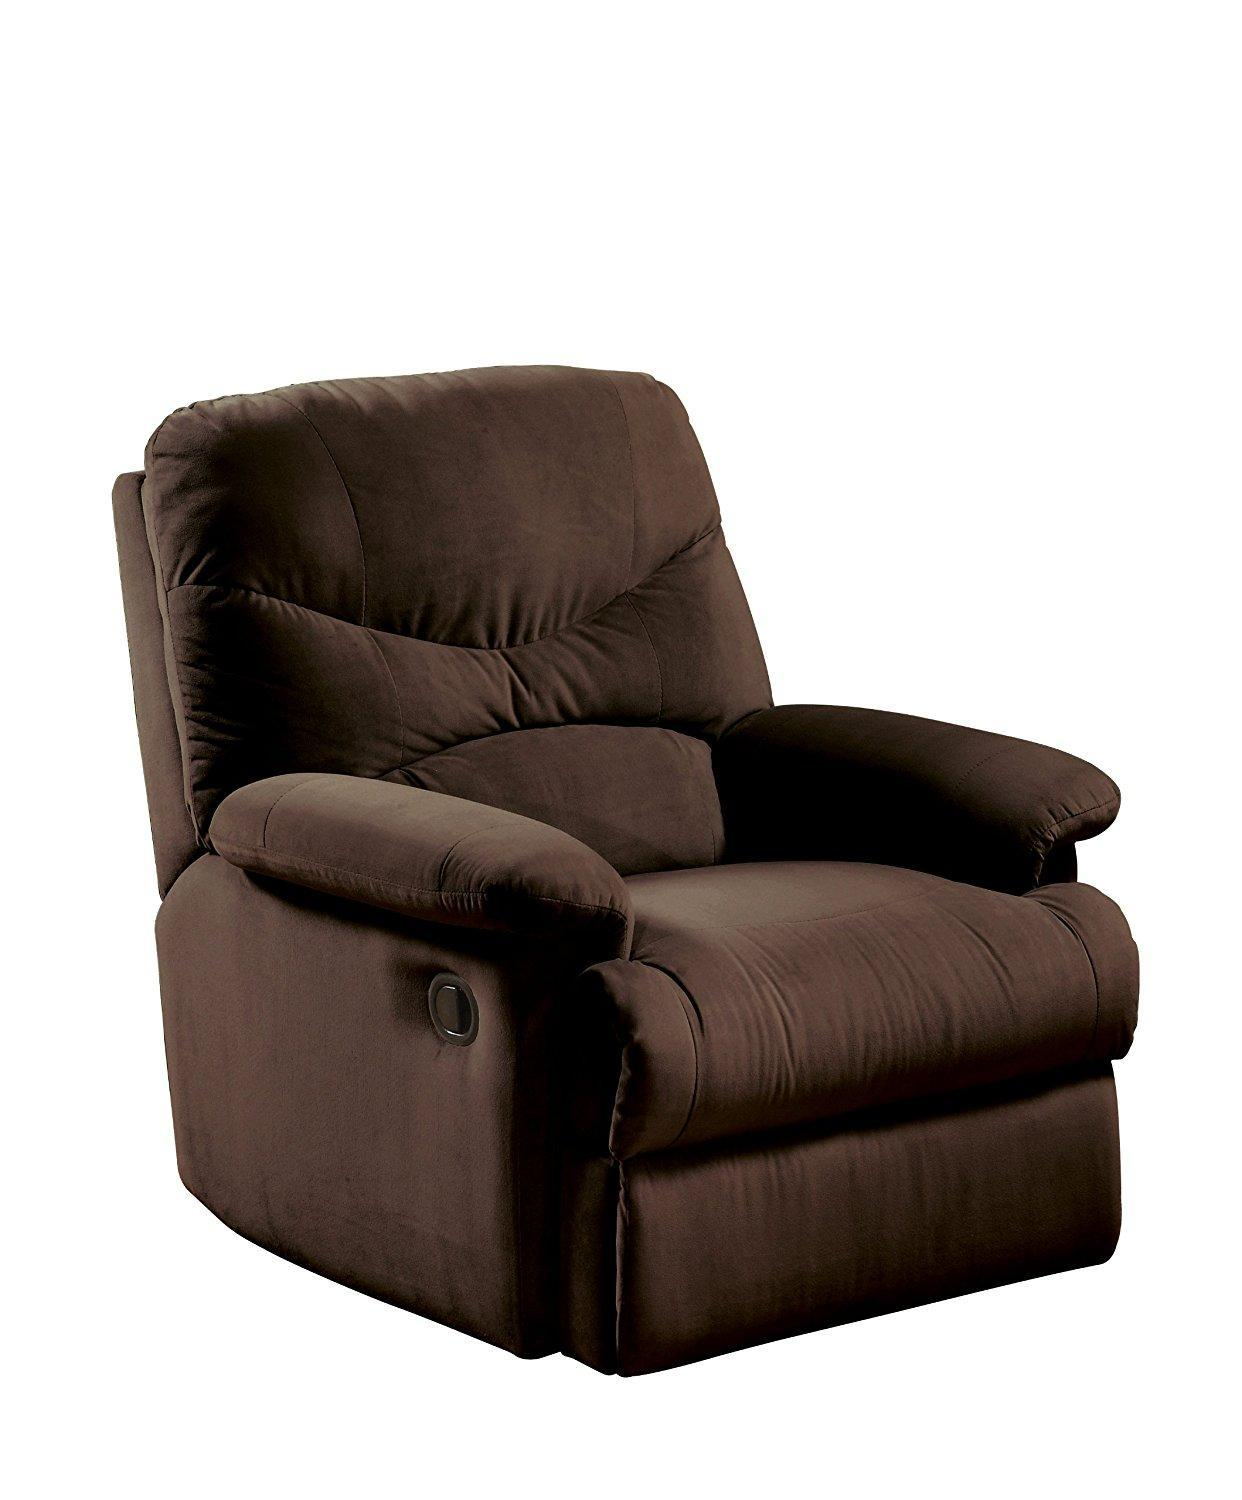 View larger  sc 1 st  Amazon.com : chocolate microfiber recliner - islam-shia.org